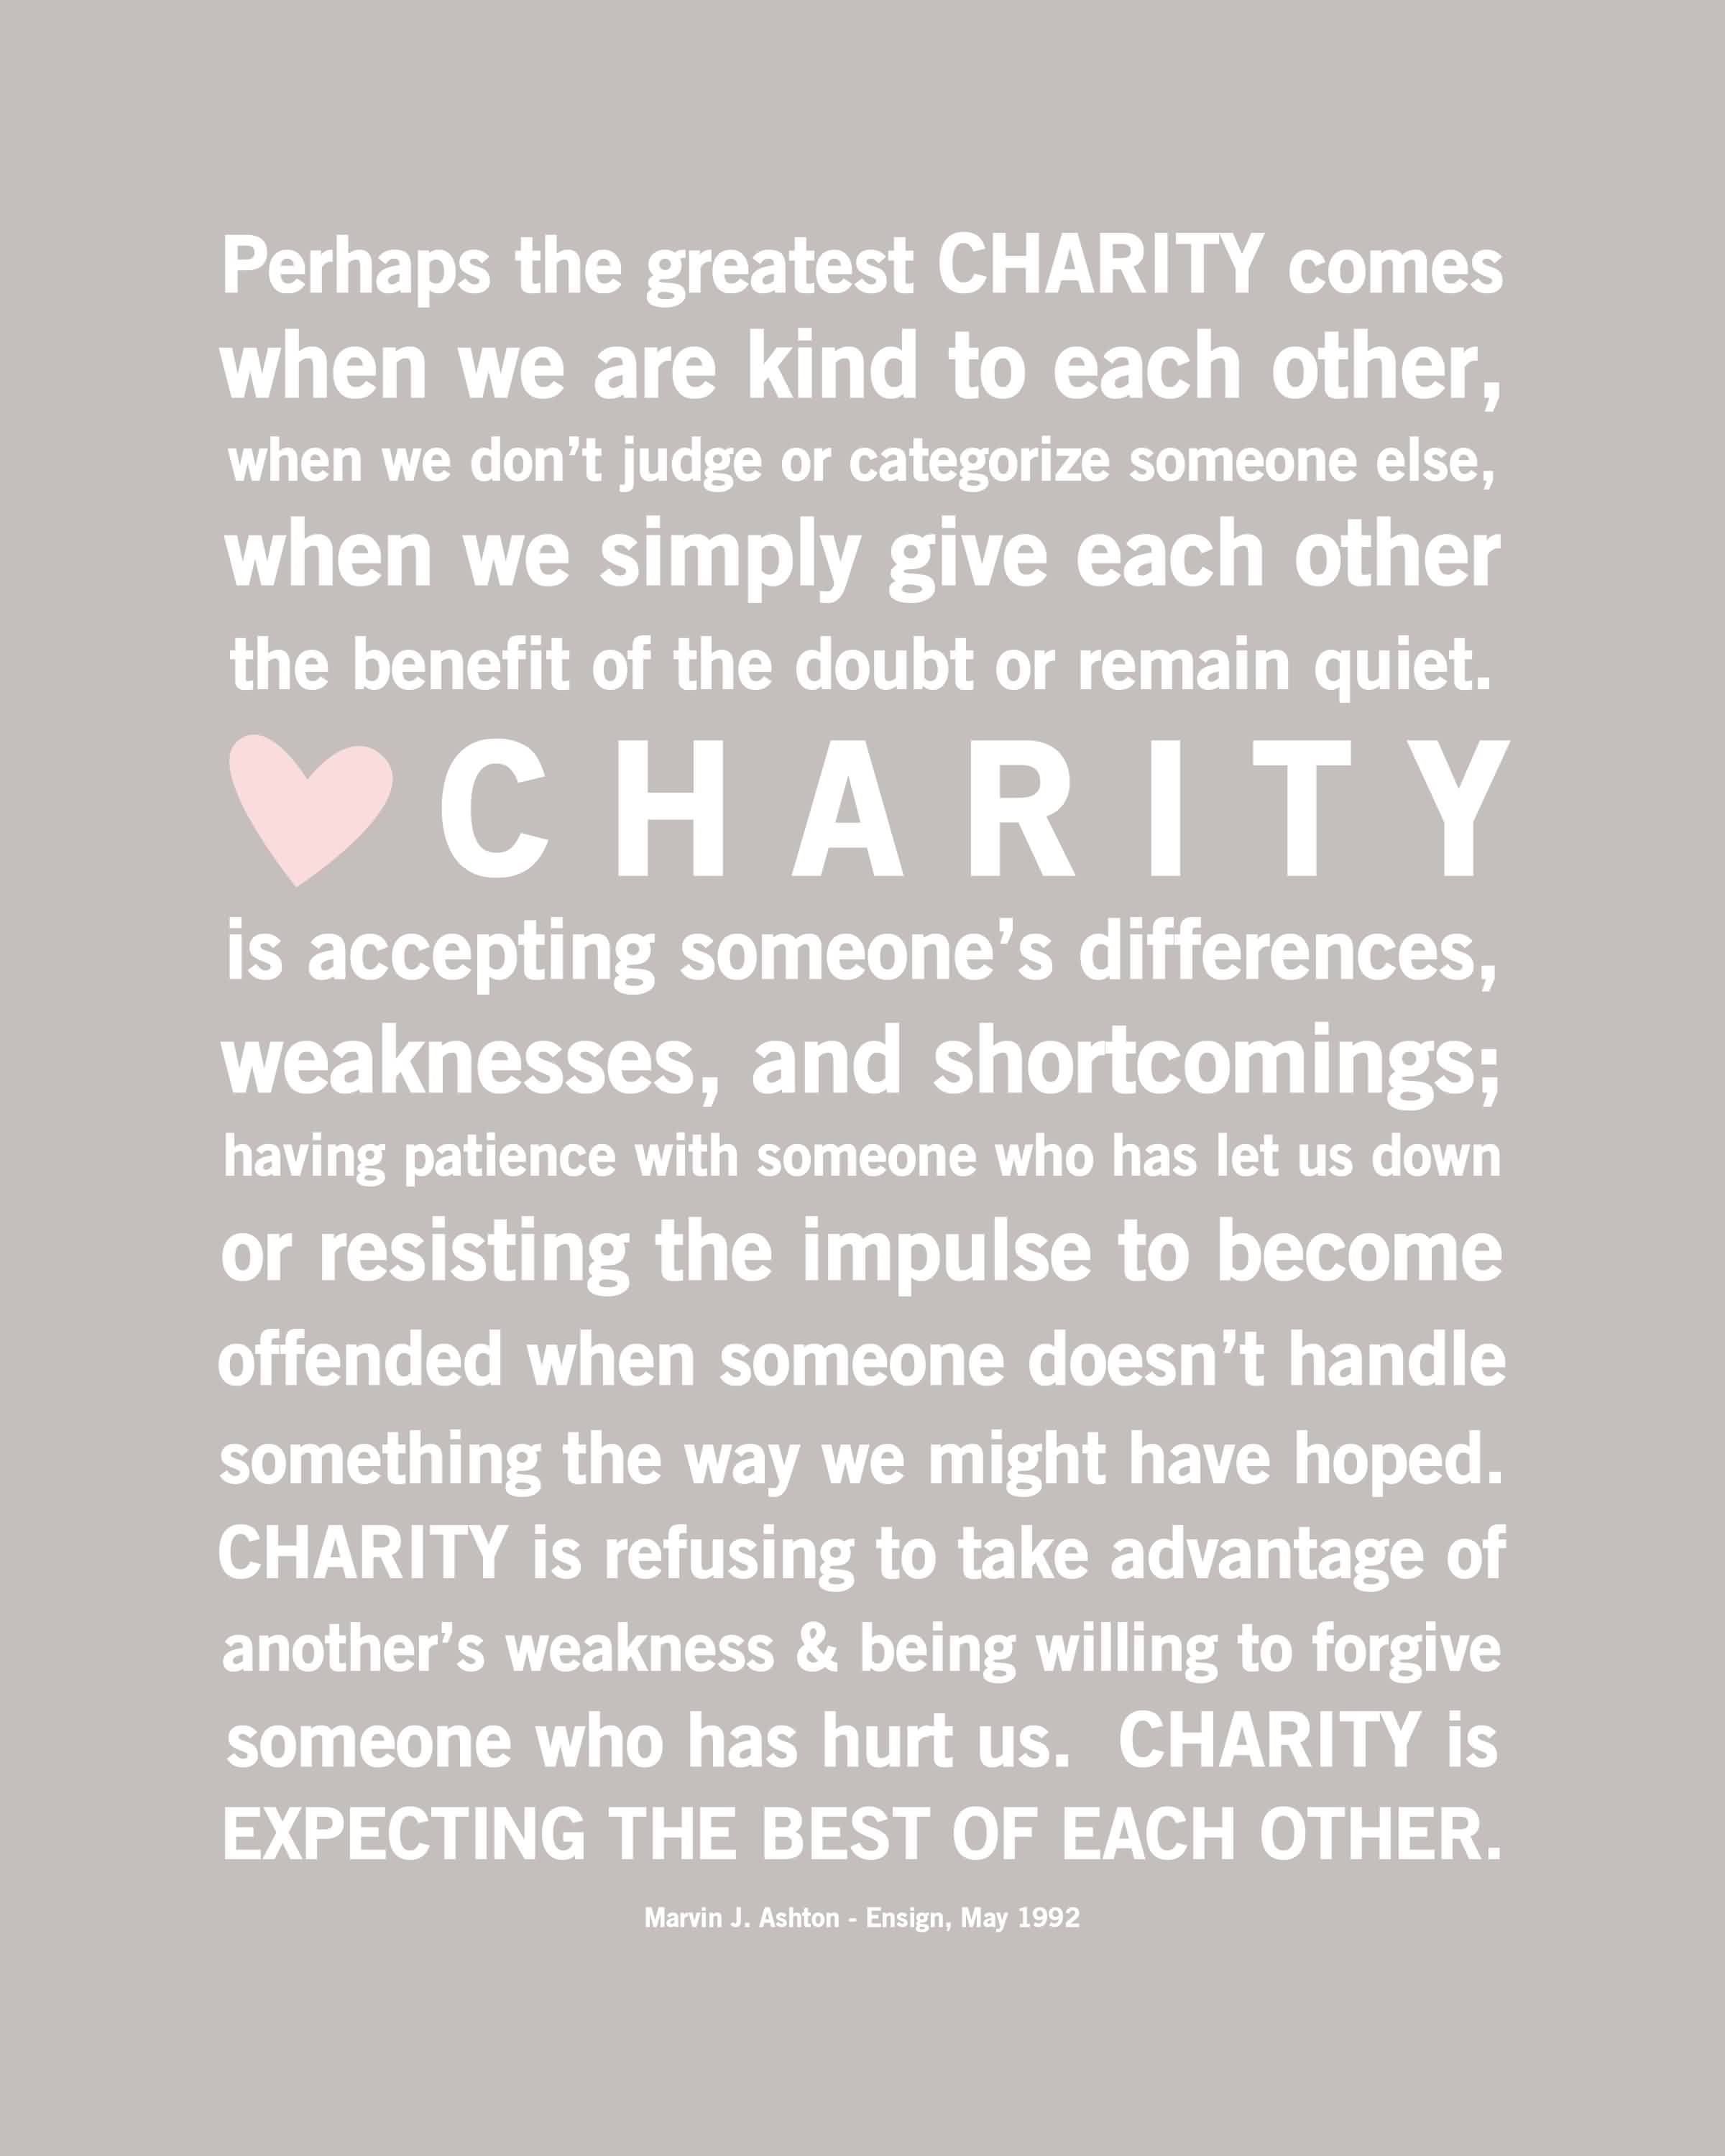 Best Charity Quote ~Perhaps the greatest charity comes when we are kind to each other..